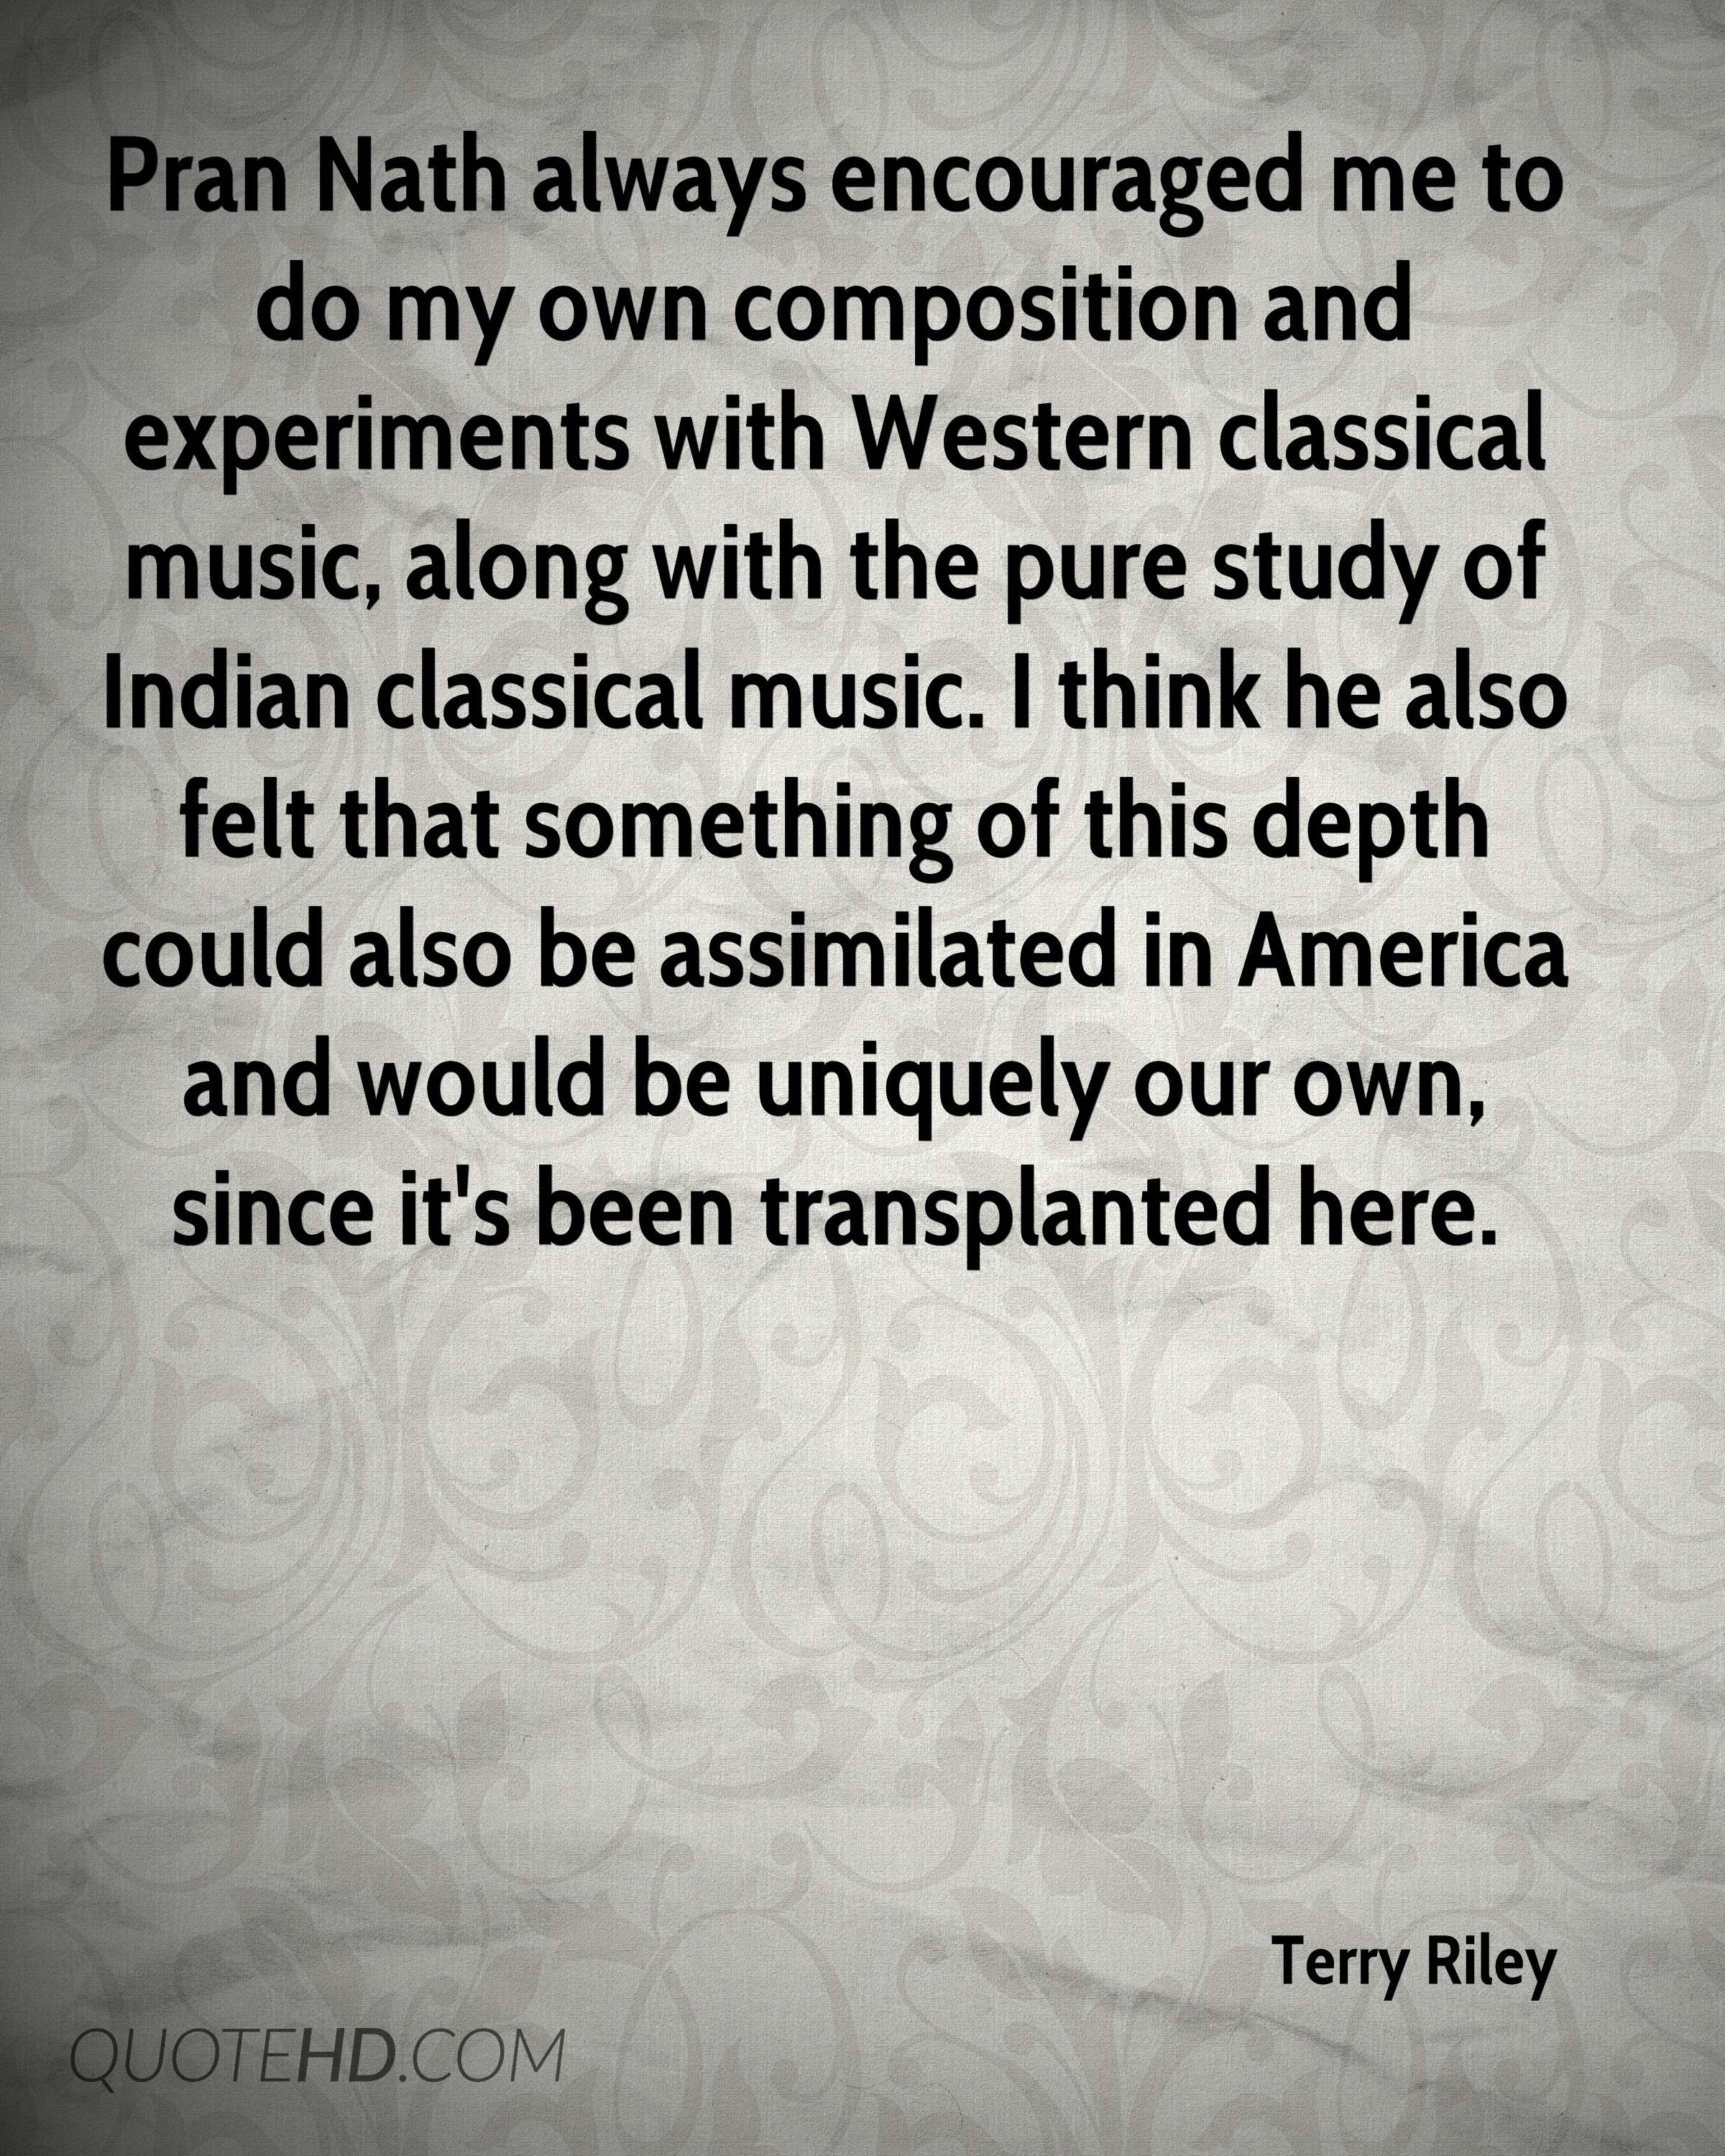 Pran Nath always encouraged me to do my own composition and experiments with Western classical music, along with the pure study of Indian classical music. I think he also felt that something of this depth could also be assimilated in America and would be uniquely our own, since it's been transplanted here.